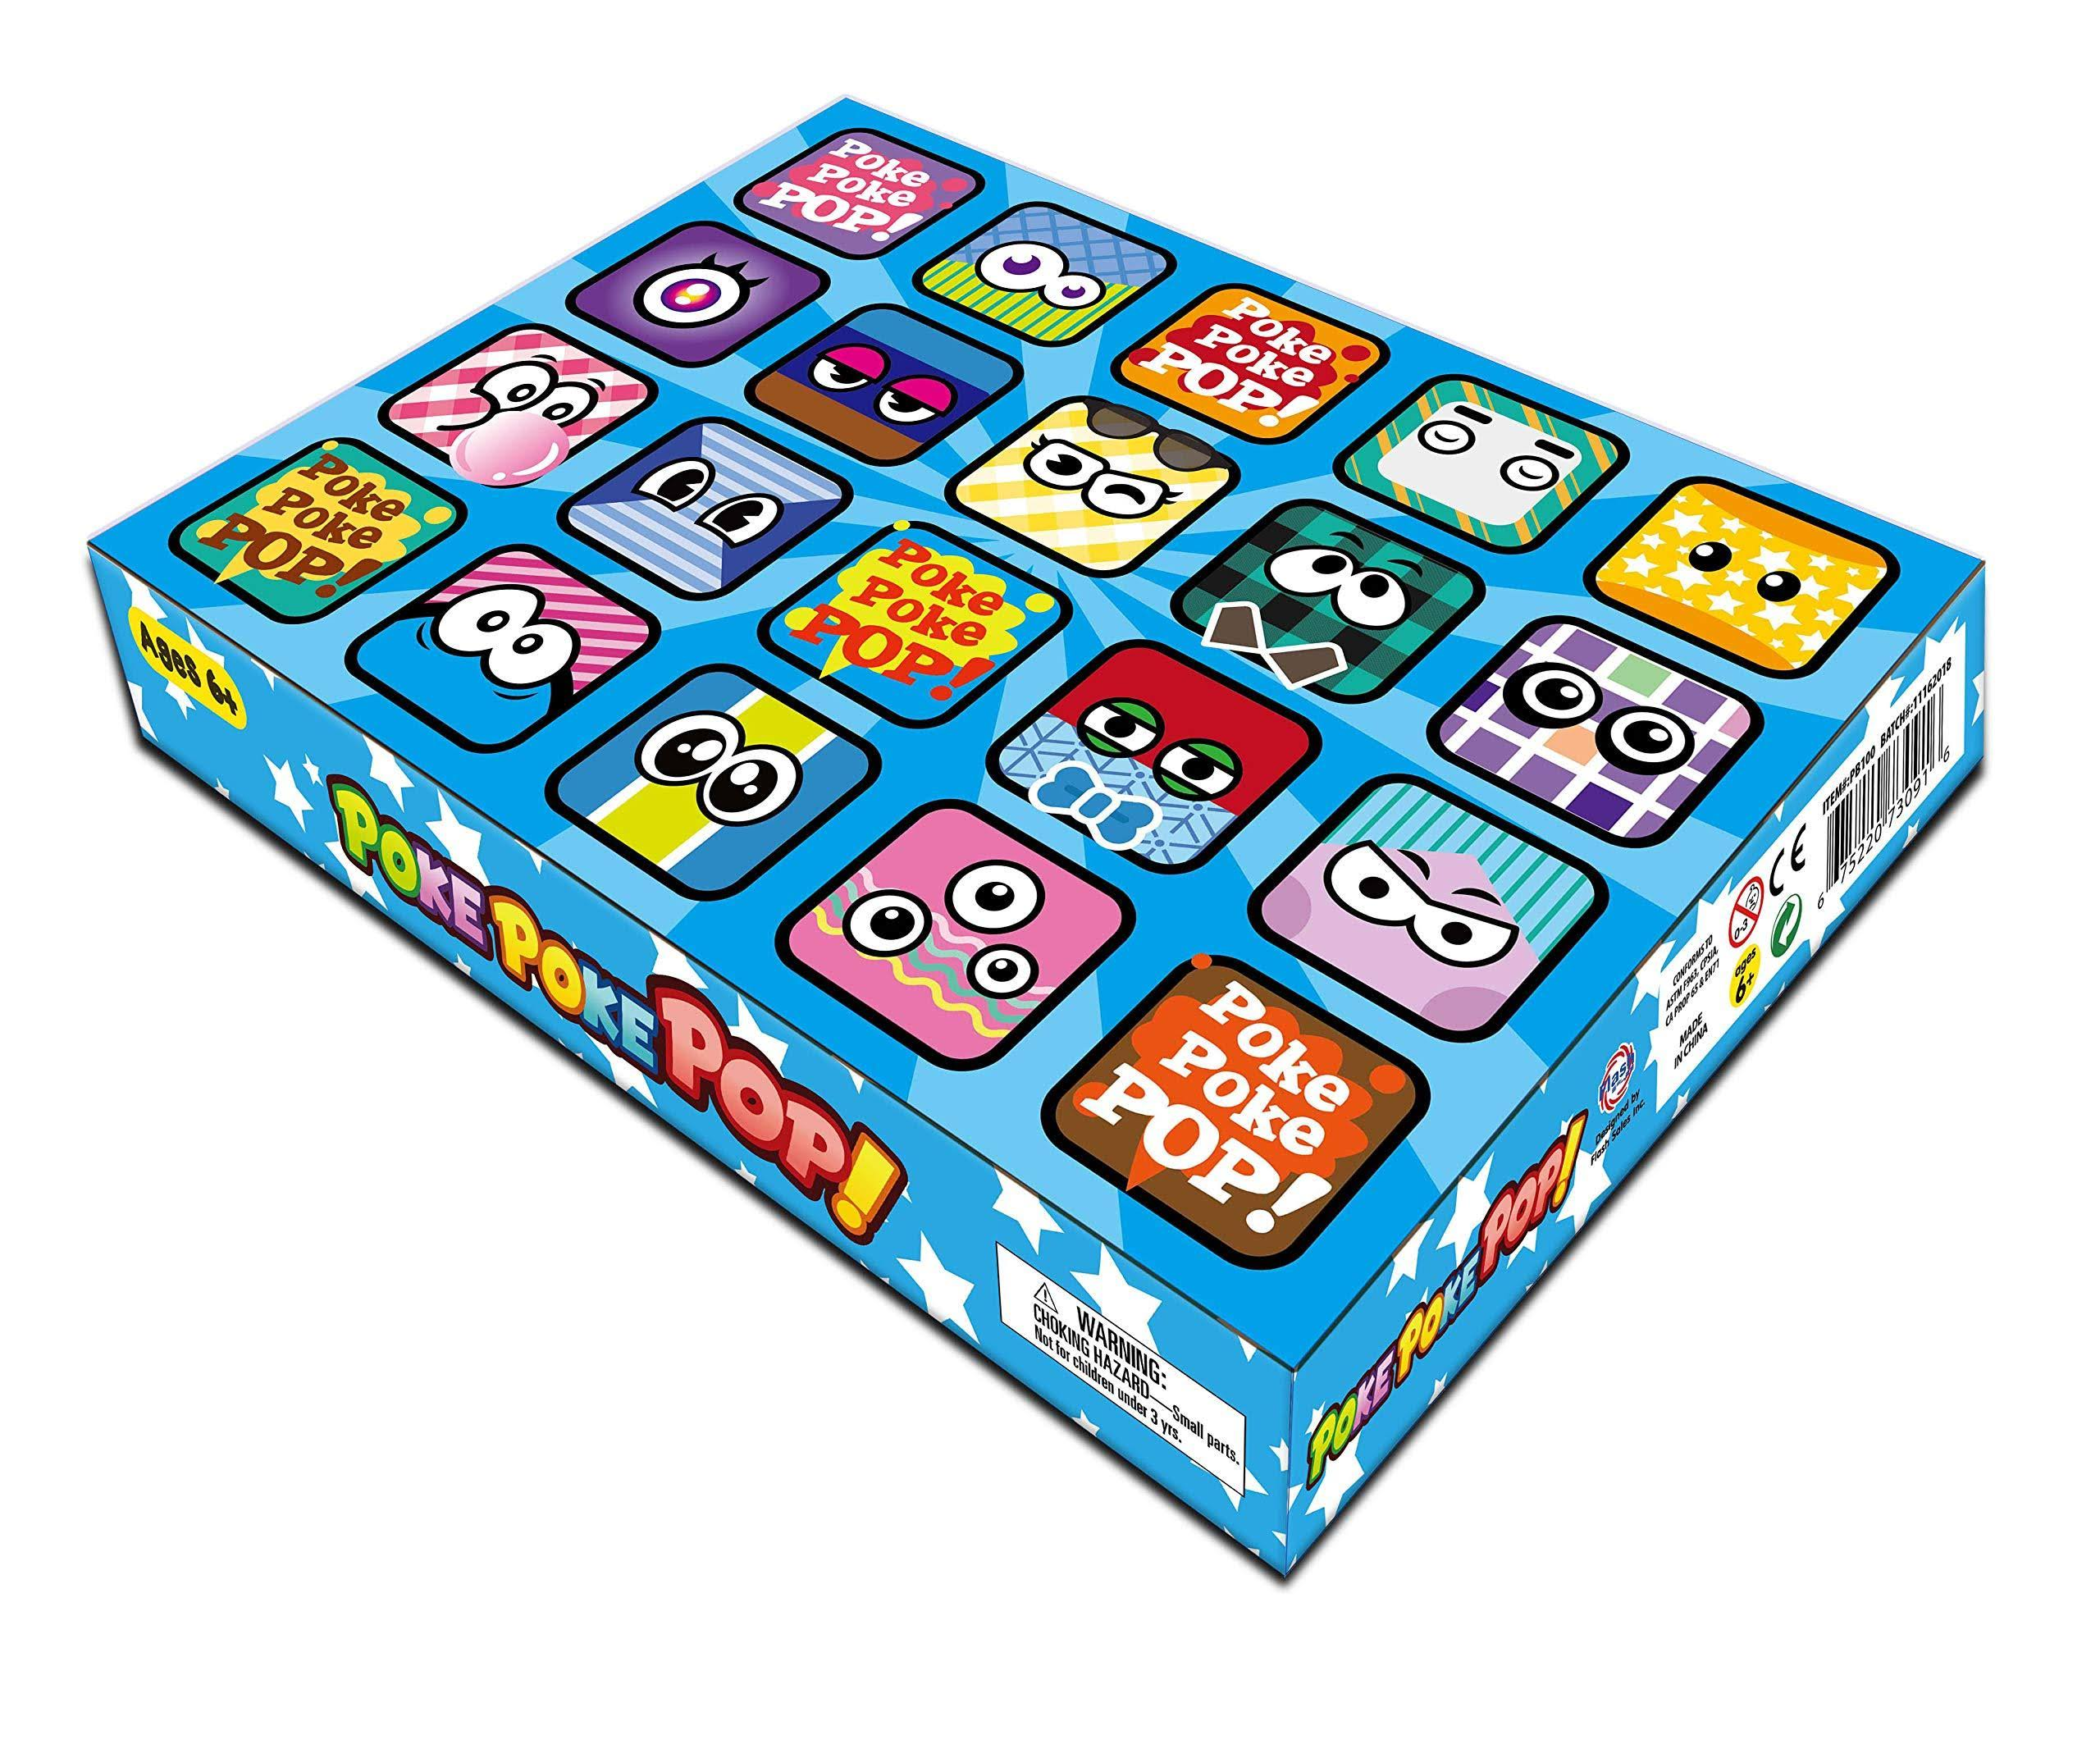 Animolds Poke Poke Box Surprise Toy Box